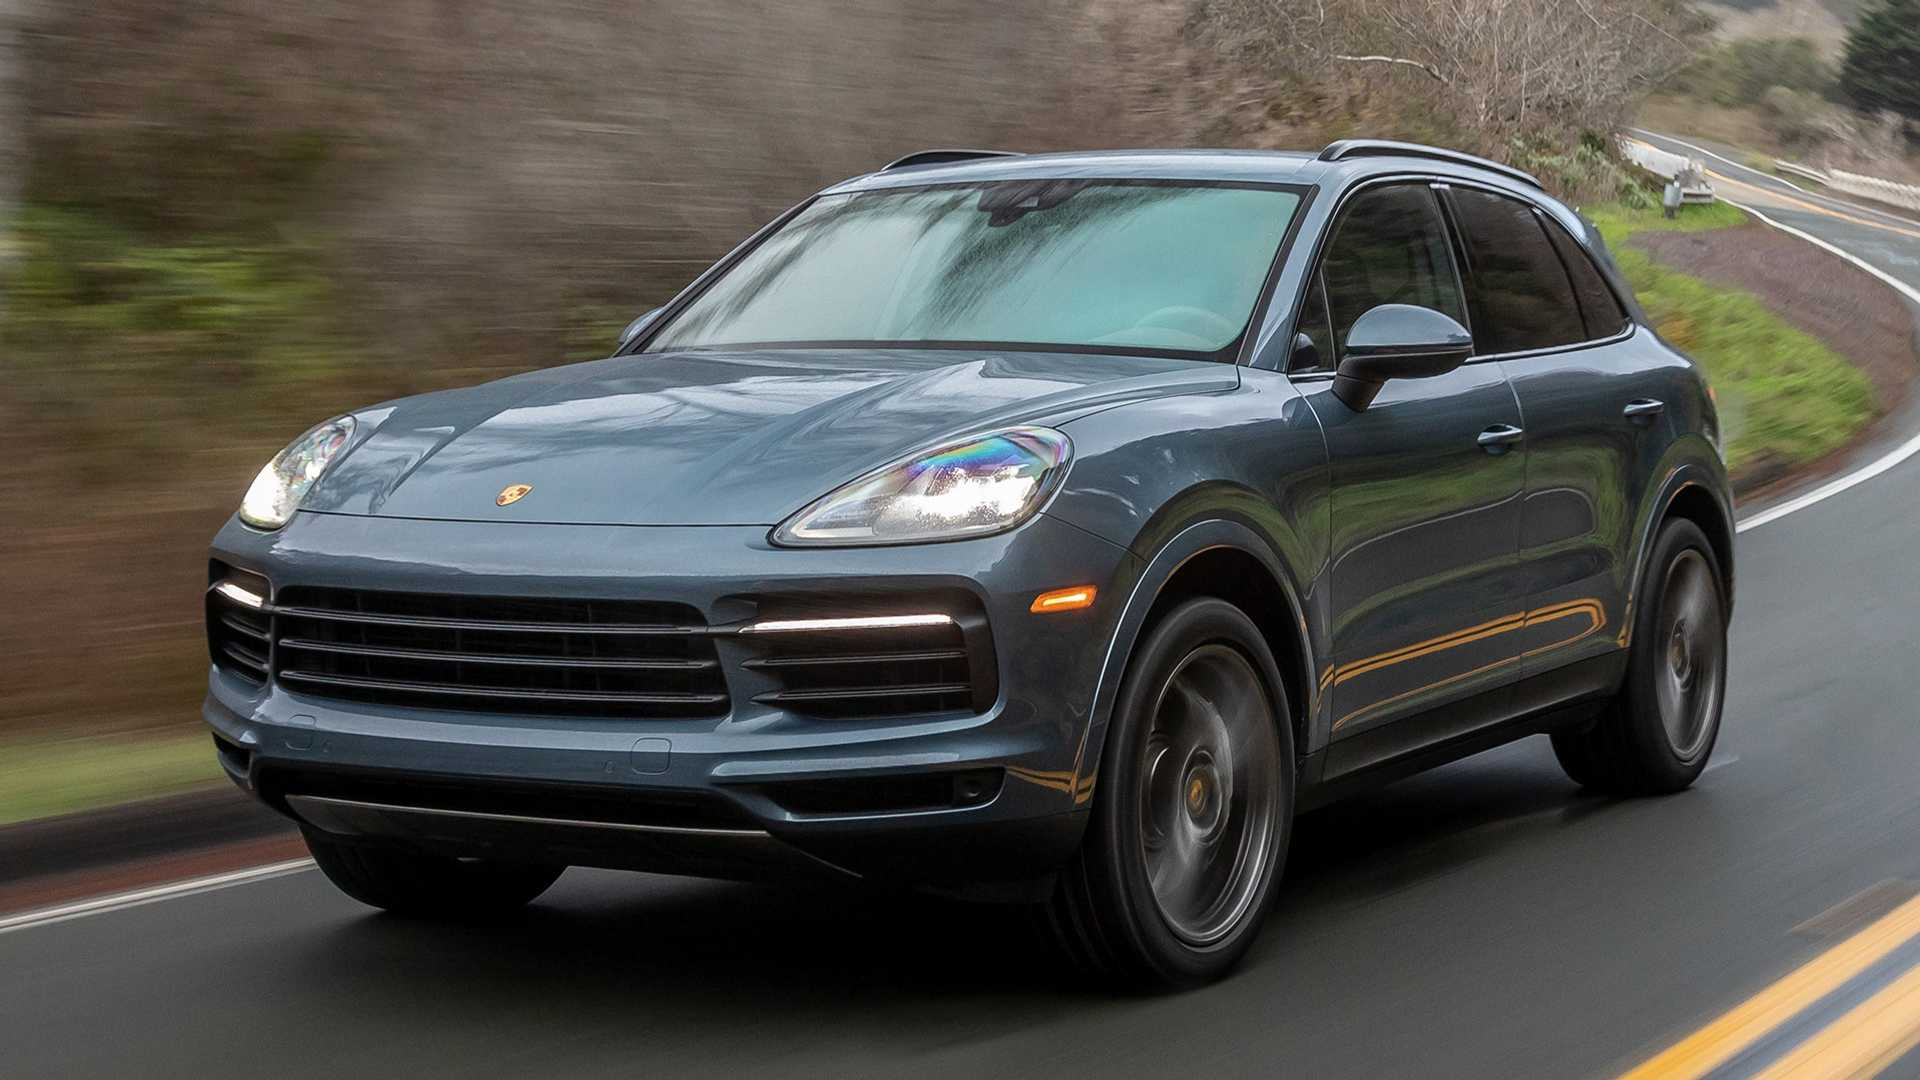 60 New 2019 Porsche Cayenne Turbo S Performance